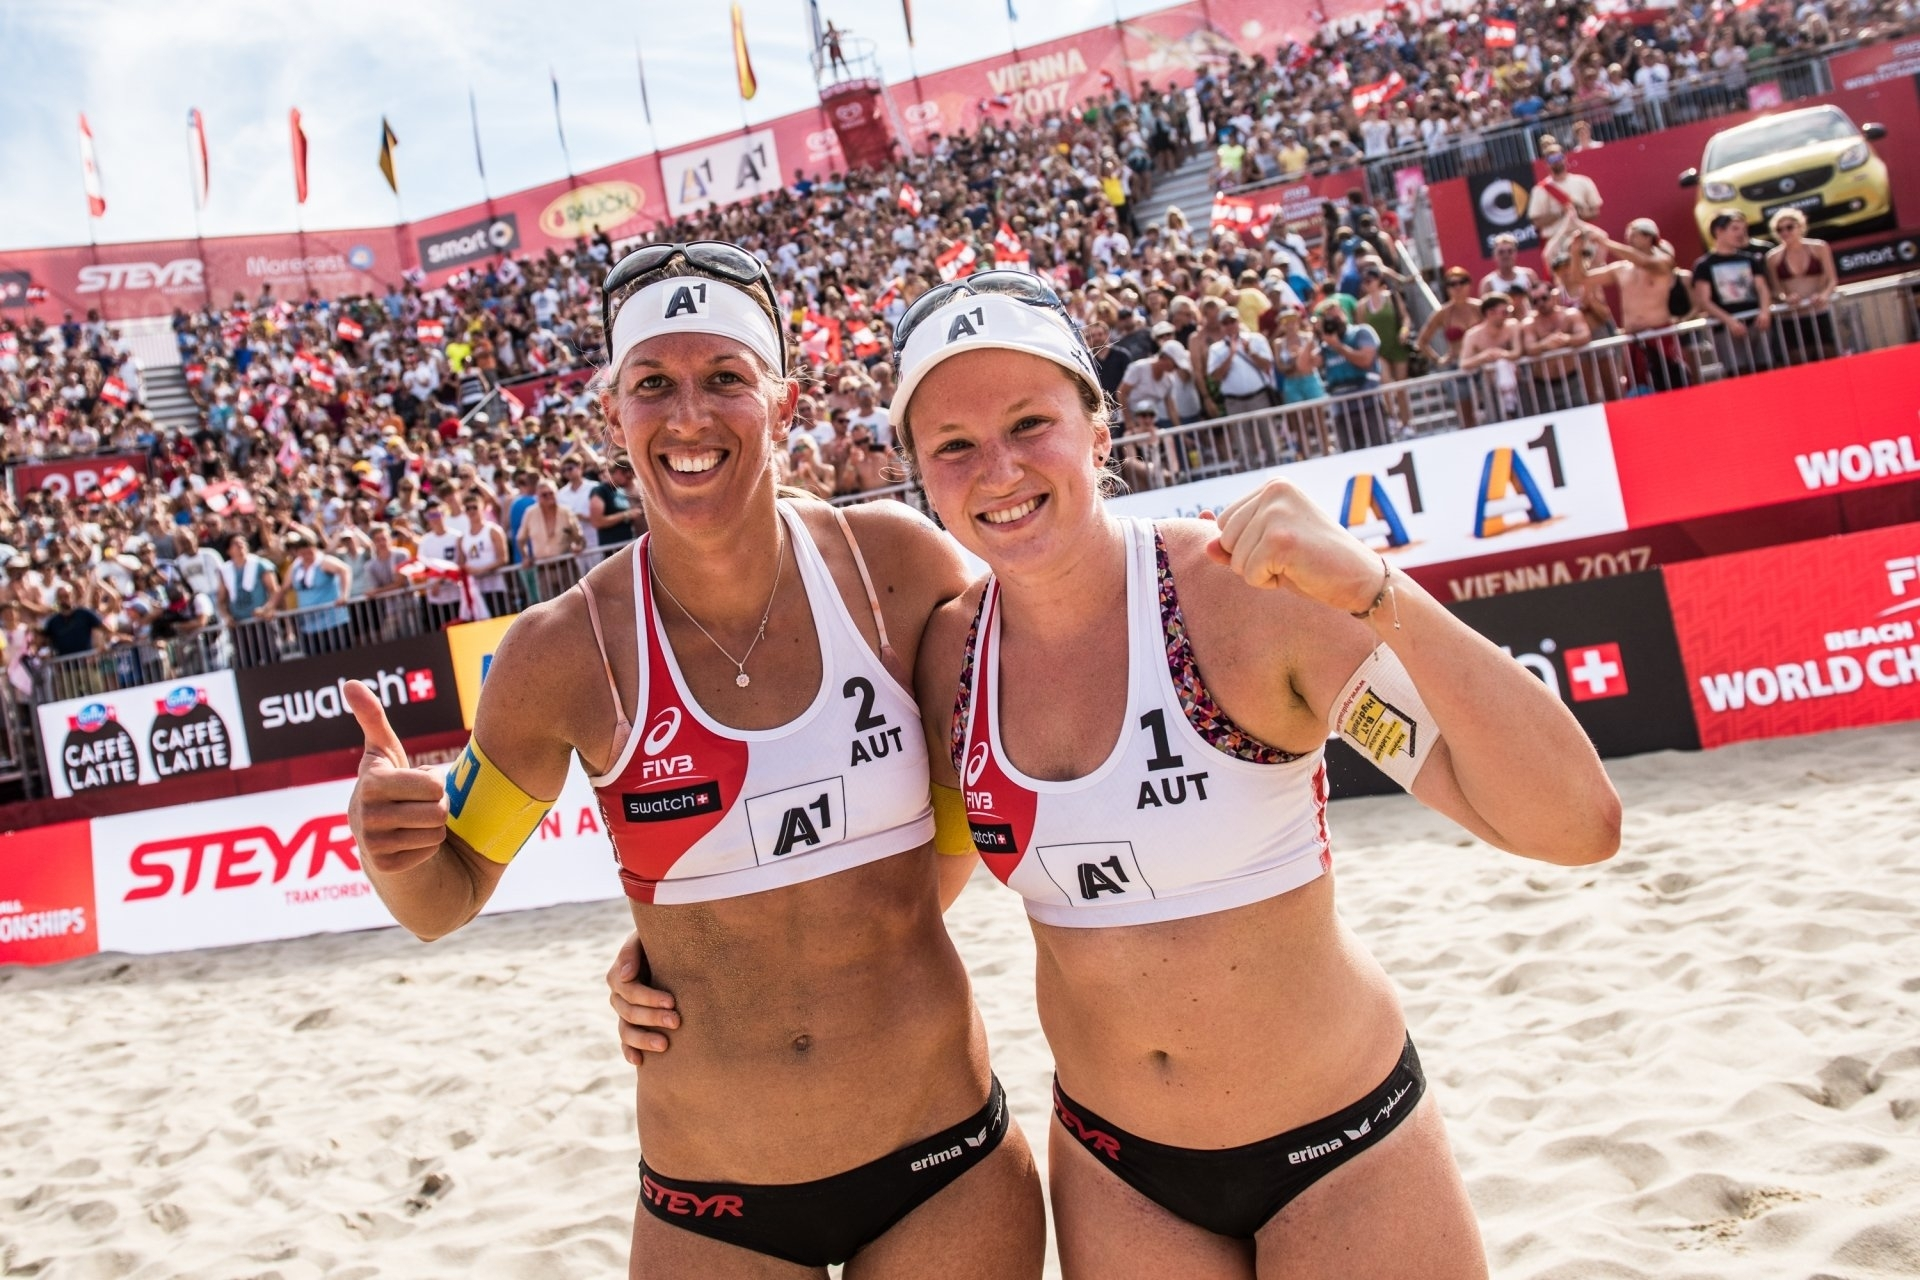 Steffi Schwaiger (left) played her final tournament at the World Championships in Vienna with Katharina Schützenhöfer